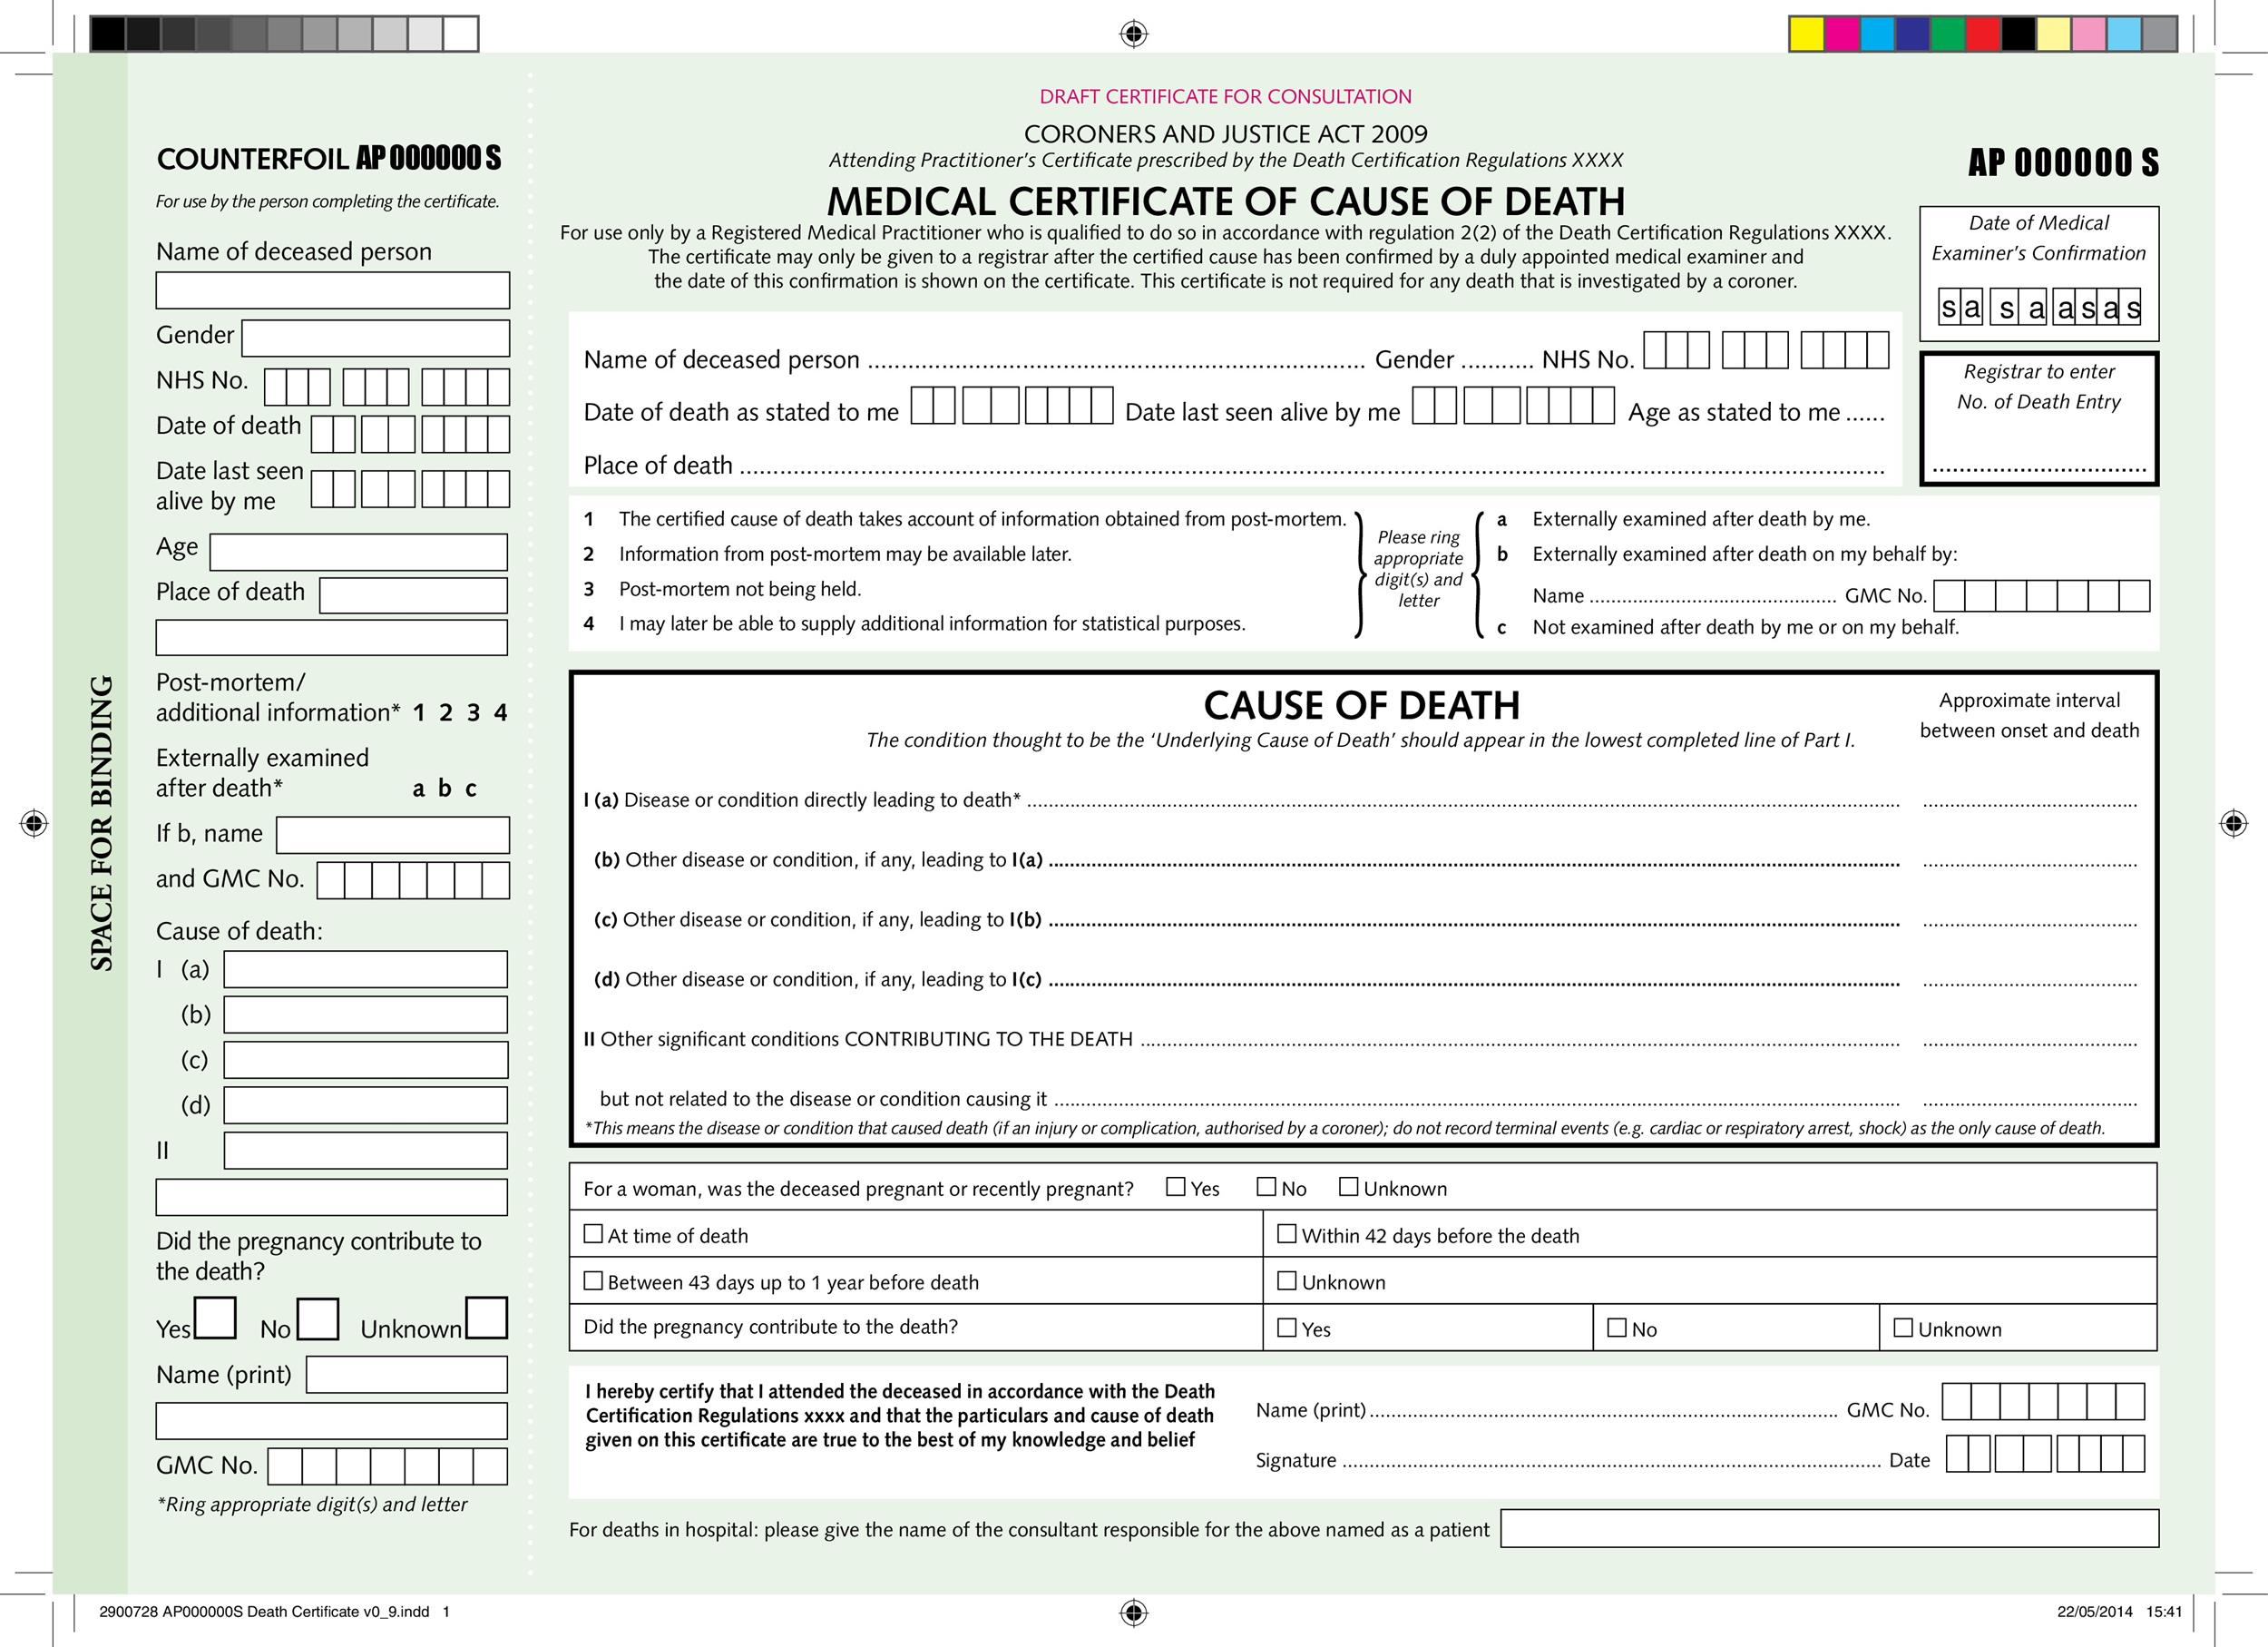 How to Get Copies of Pennsylvania Birth, Death and Marriage Certificates